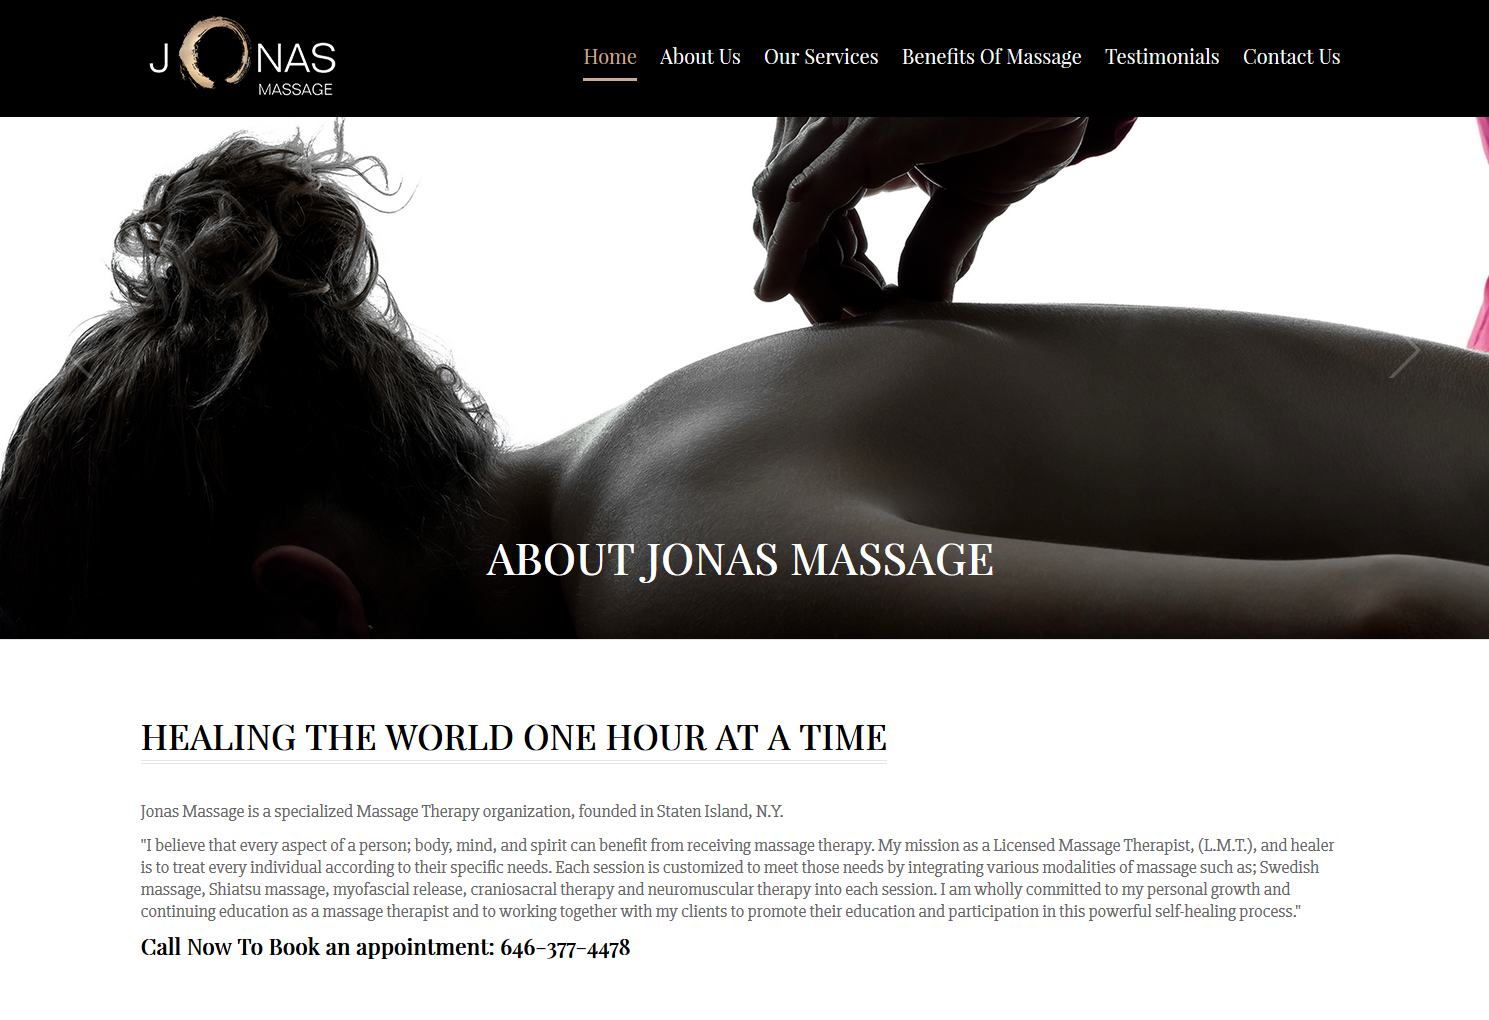 Jonas Massage